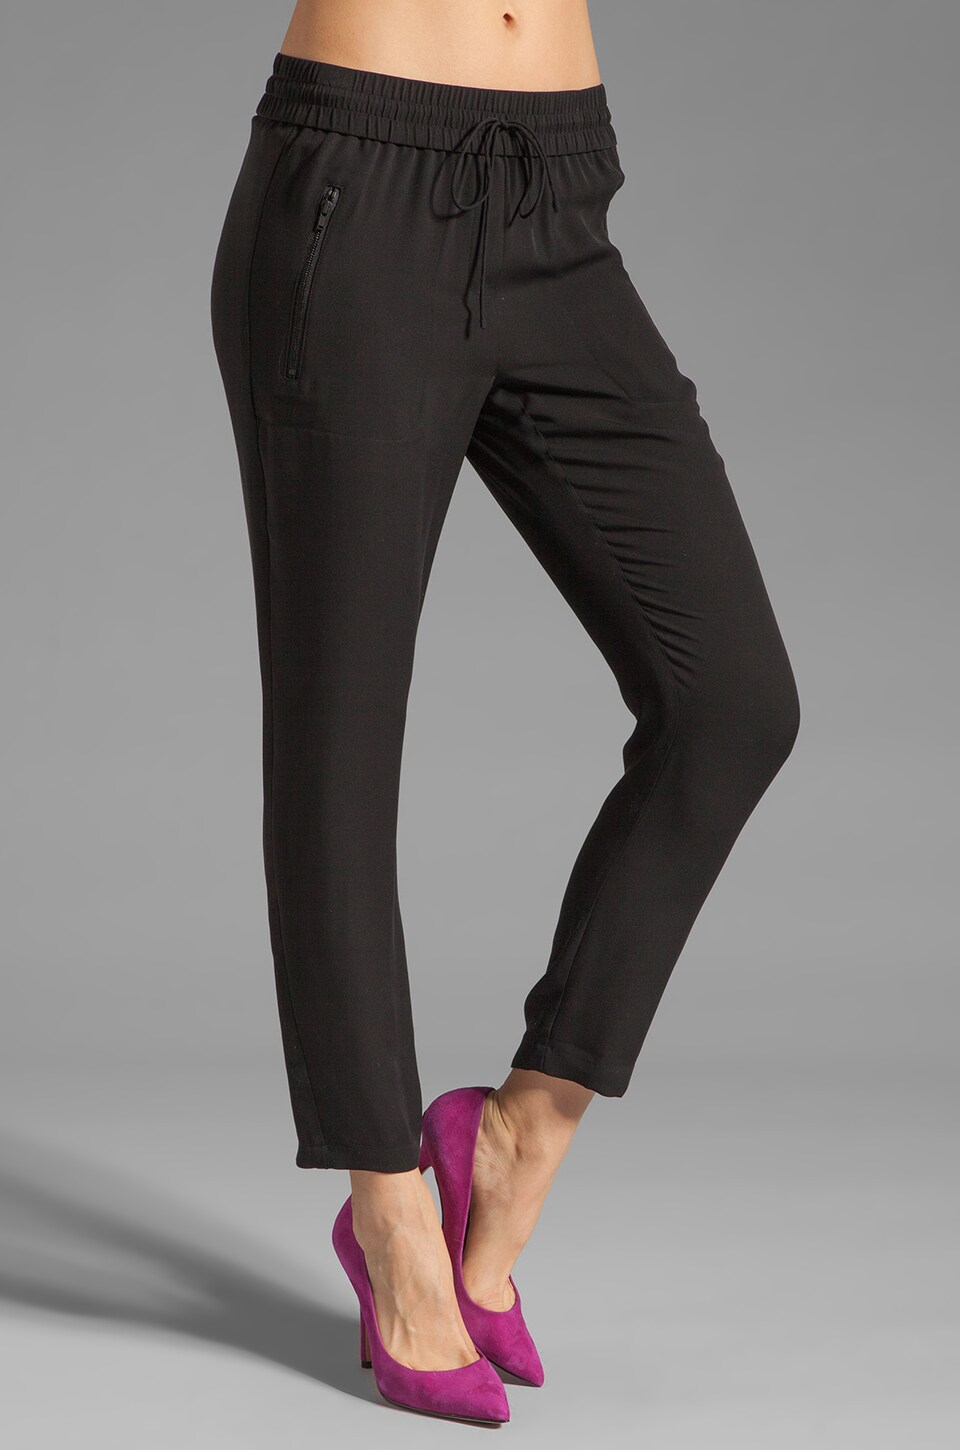 Theory Double Georgette Malick Pant in Black